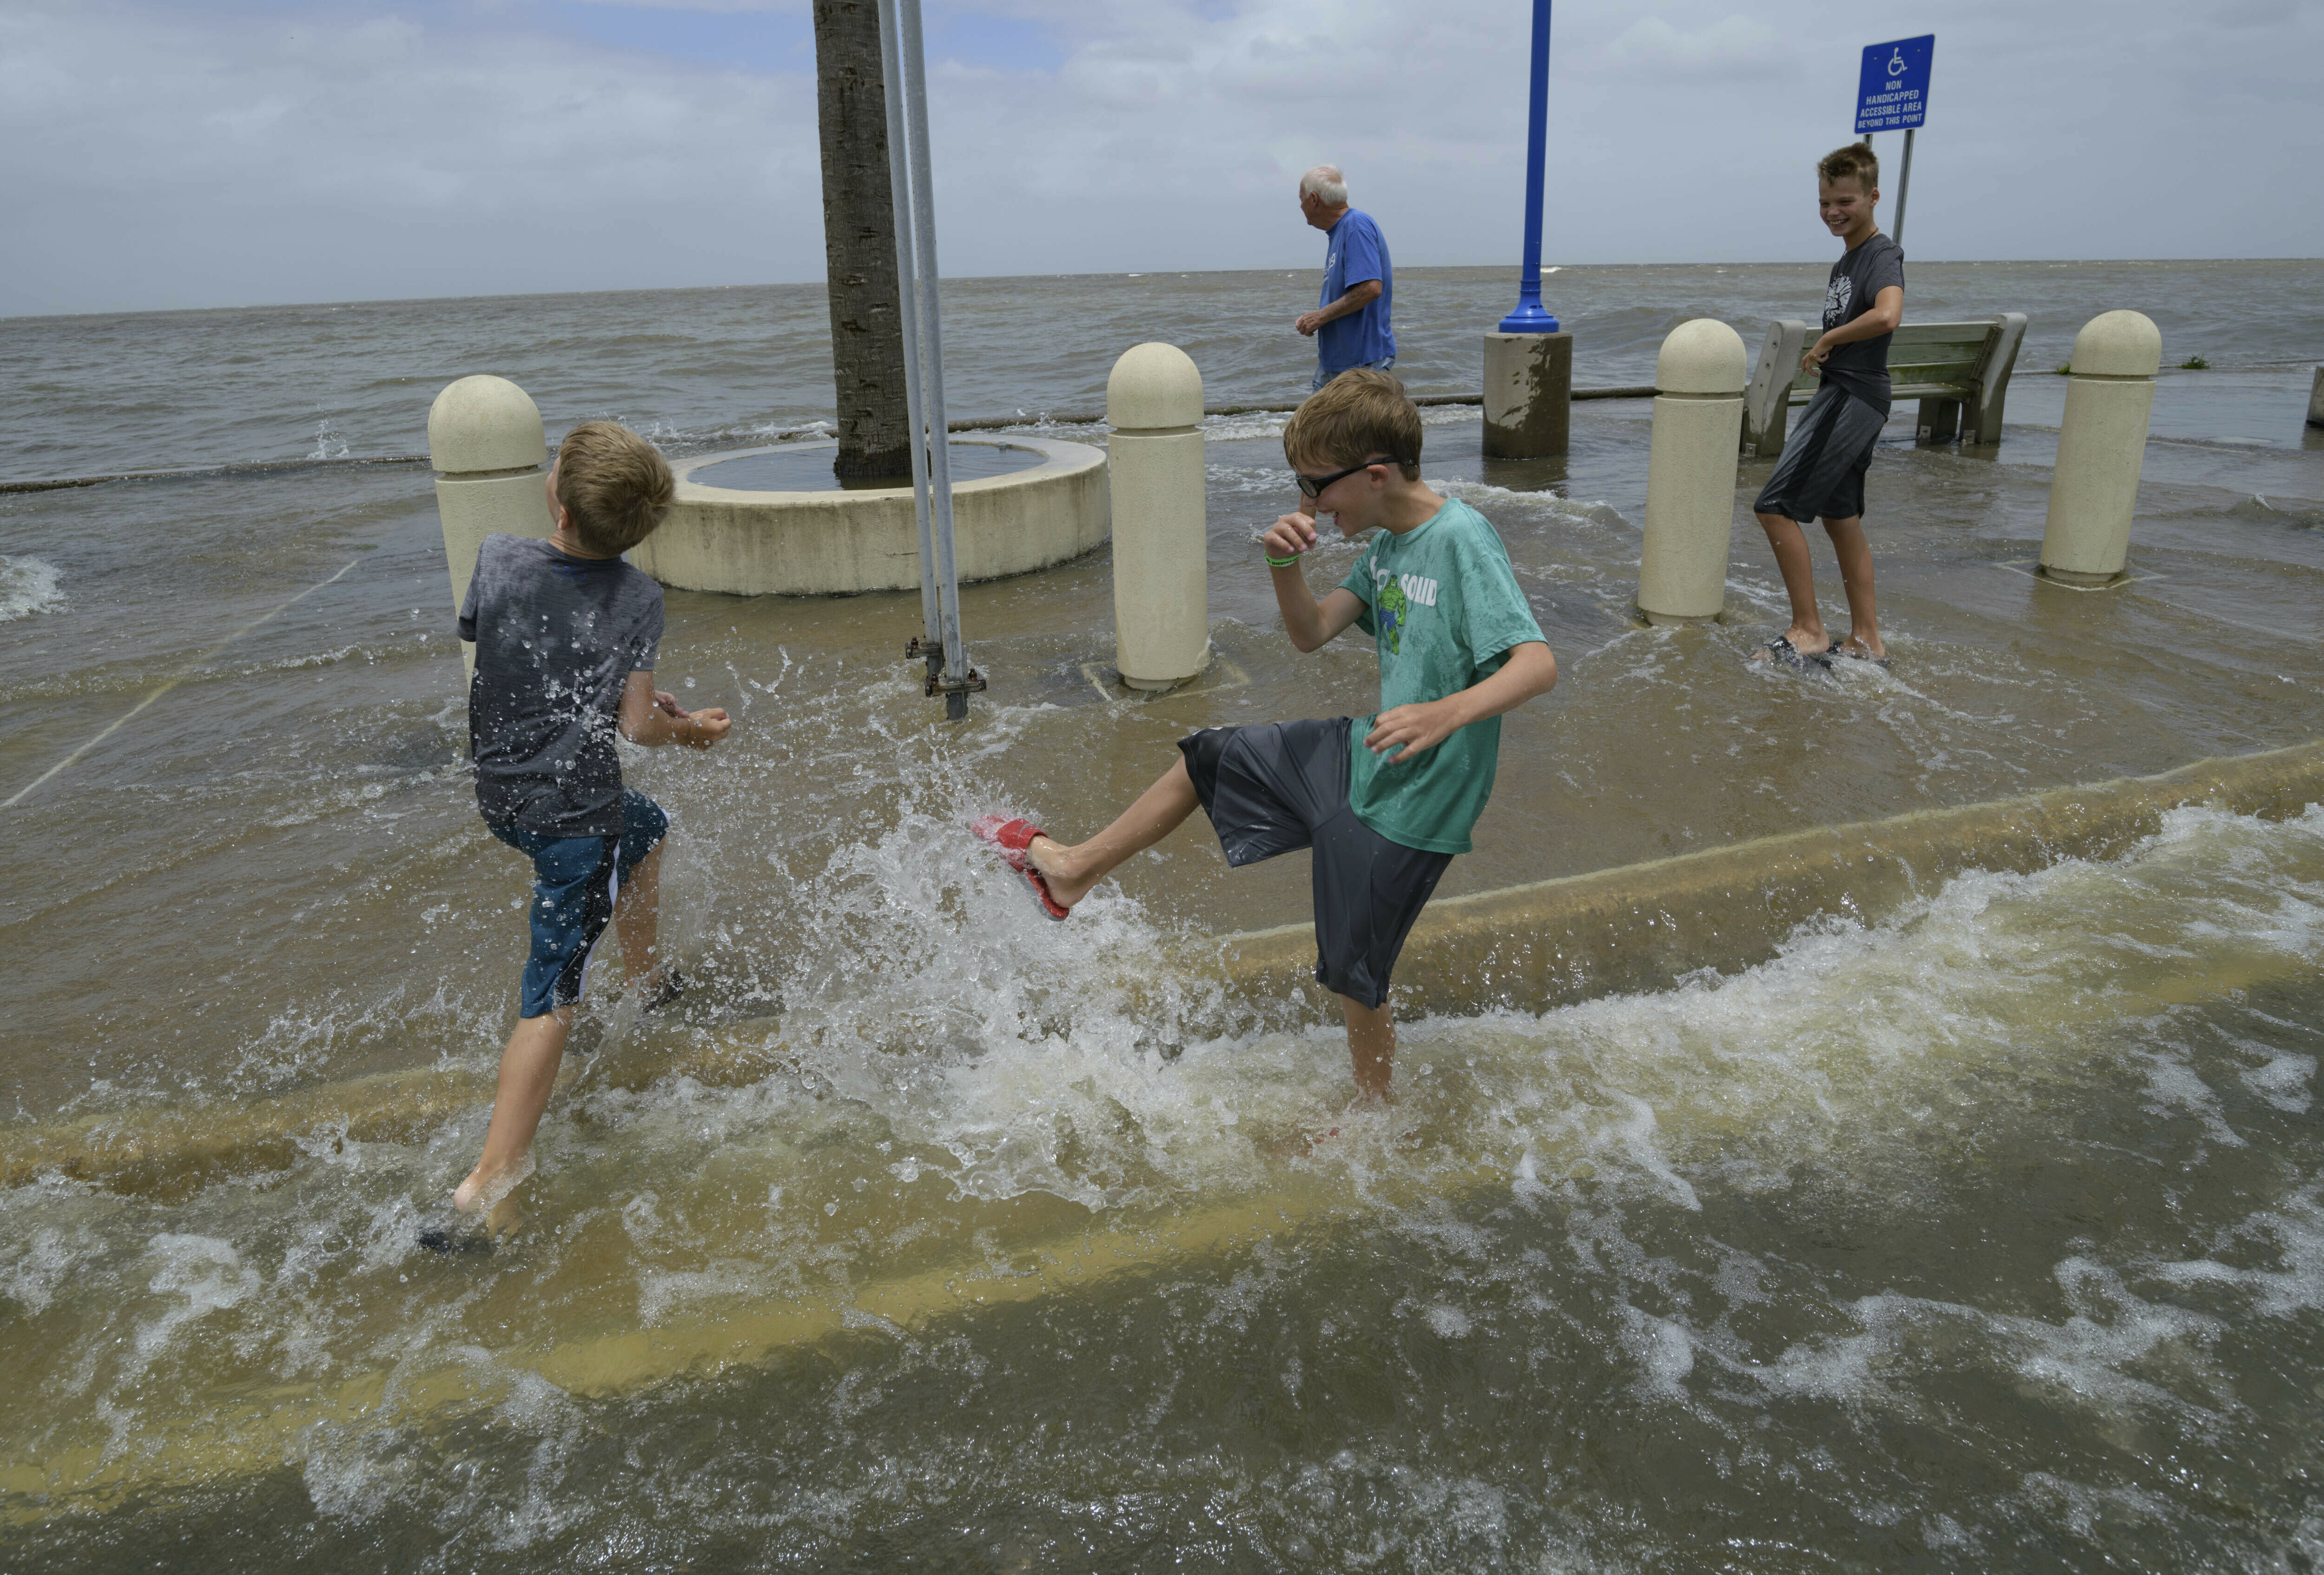 Its powerful: Tropical storm starts lashing Louisiana